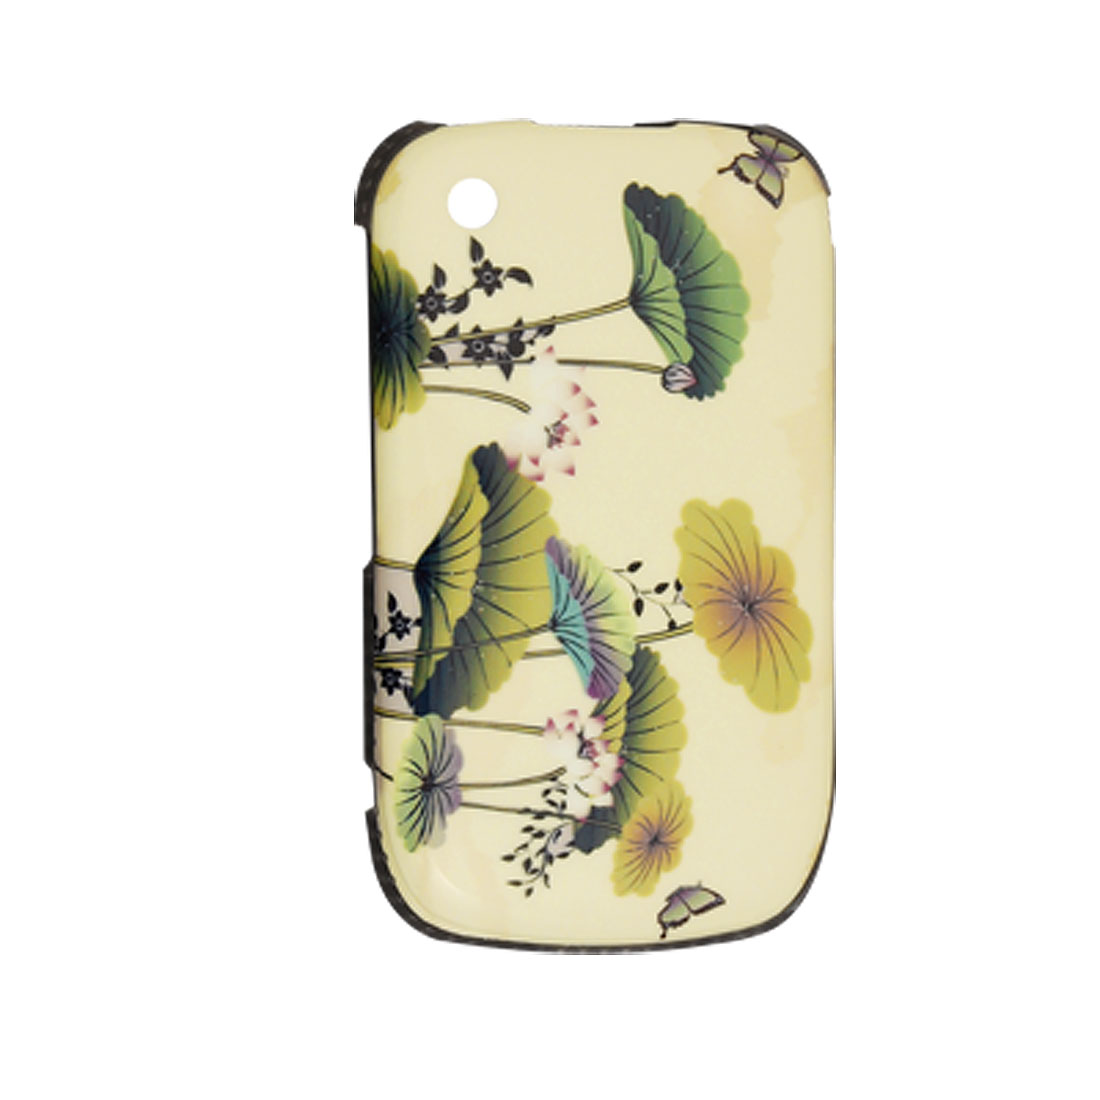 Plastic Case Lotus Leaf Back Cover for Blackberry 8520 Curve